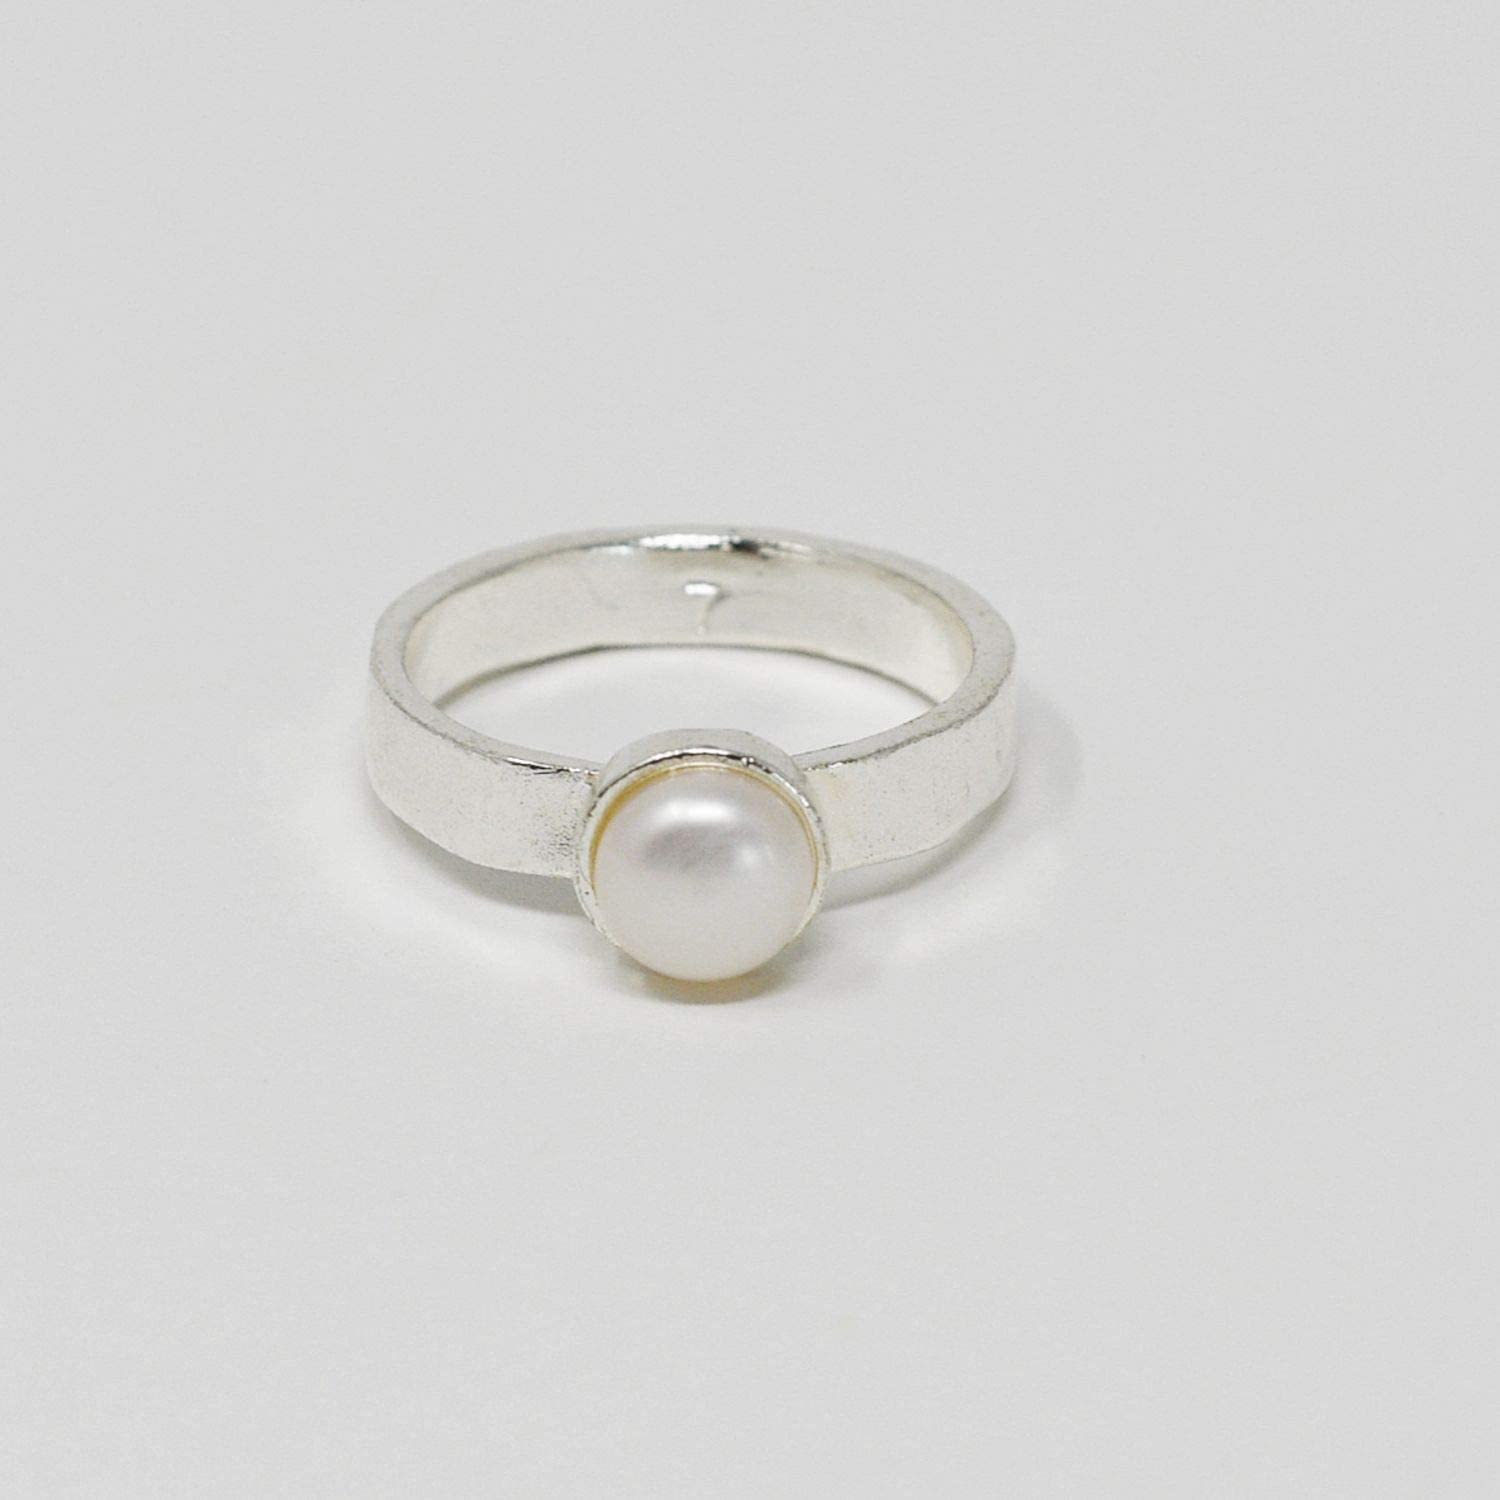 Pearl Ring|Dainty Ring|Thin Gold Ring|Stacking Ring|Freshwater Pearl Ring|Delicate Pearl Ring|Promise Ring|Dainty Ring|Chevron Ring|Jewelry